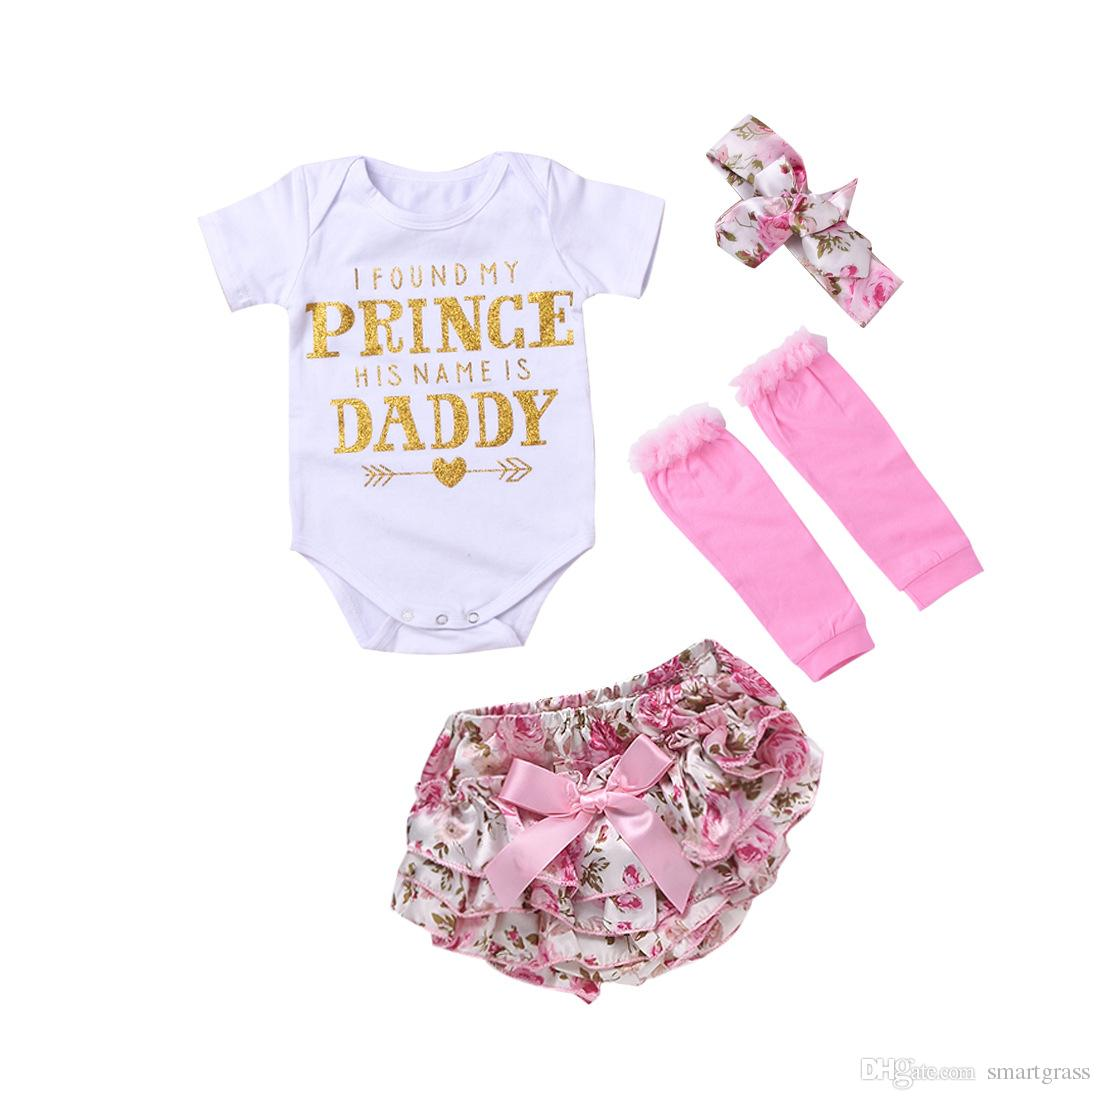 dcf9a0c36a345 2019 Newborn Baby Girl Rompers Clothes Sets Fashion Short Sleeve Romper  Lovely PP Short Leggings Flower Headband Baby Clothes 17121502 From  Smartgrass, ...